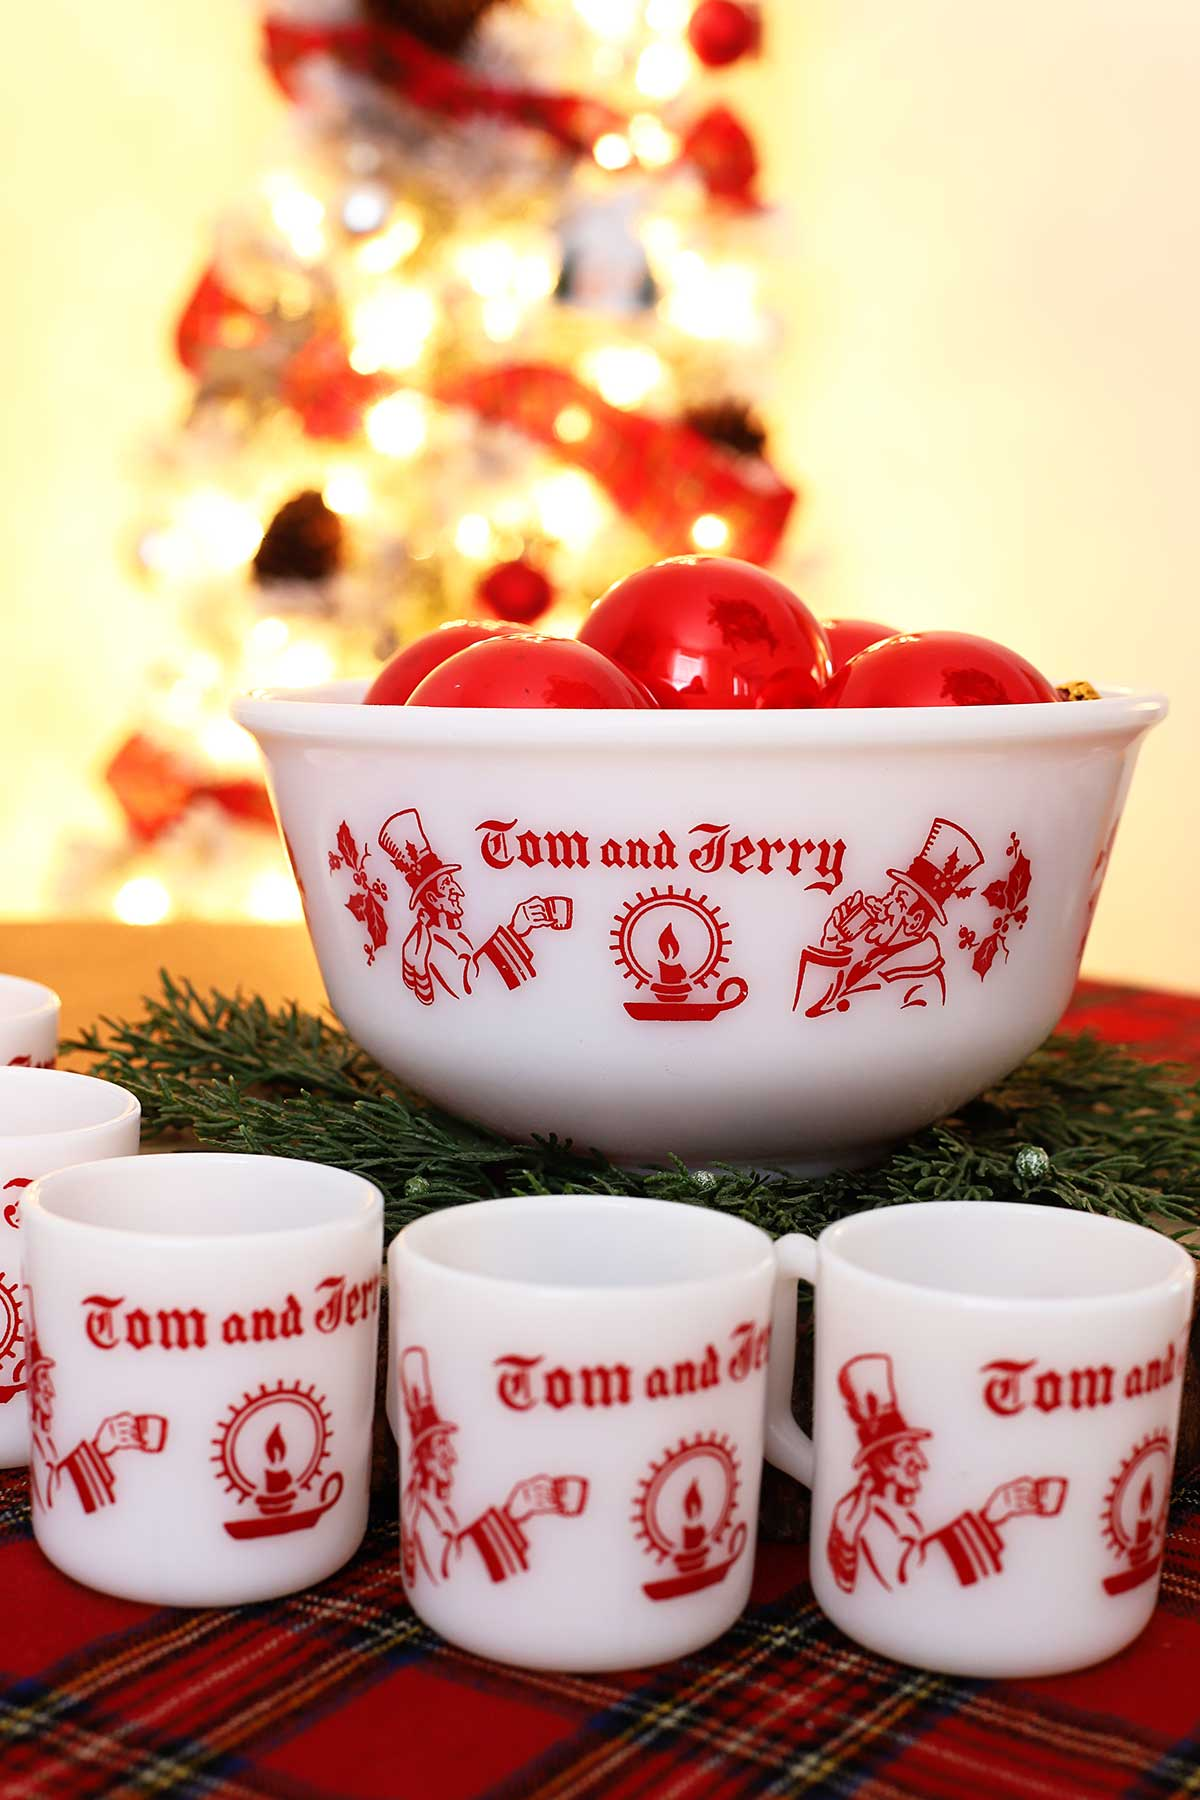 classic red and white milk glass Tom & Jerry set made by Hazel Atlas